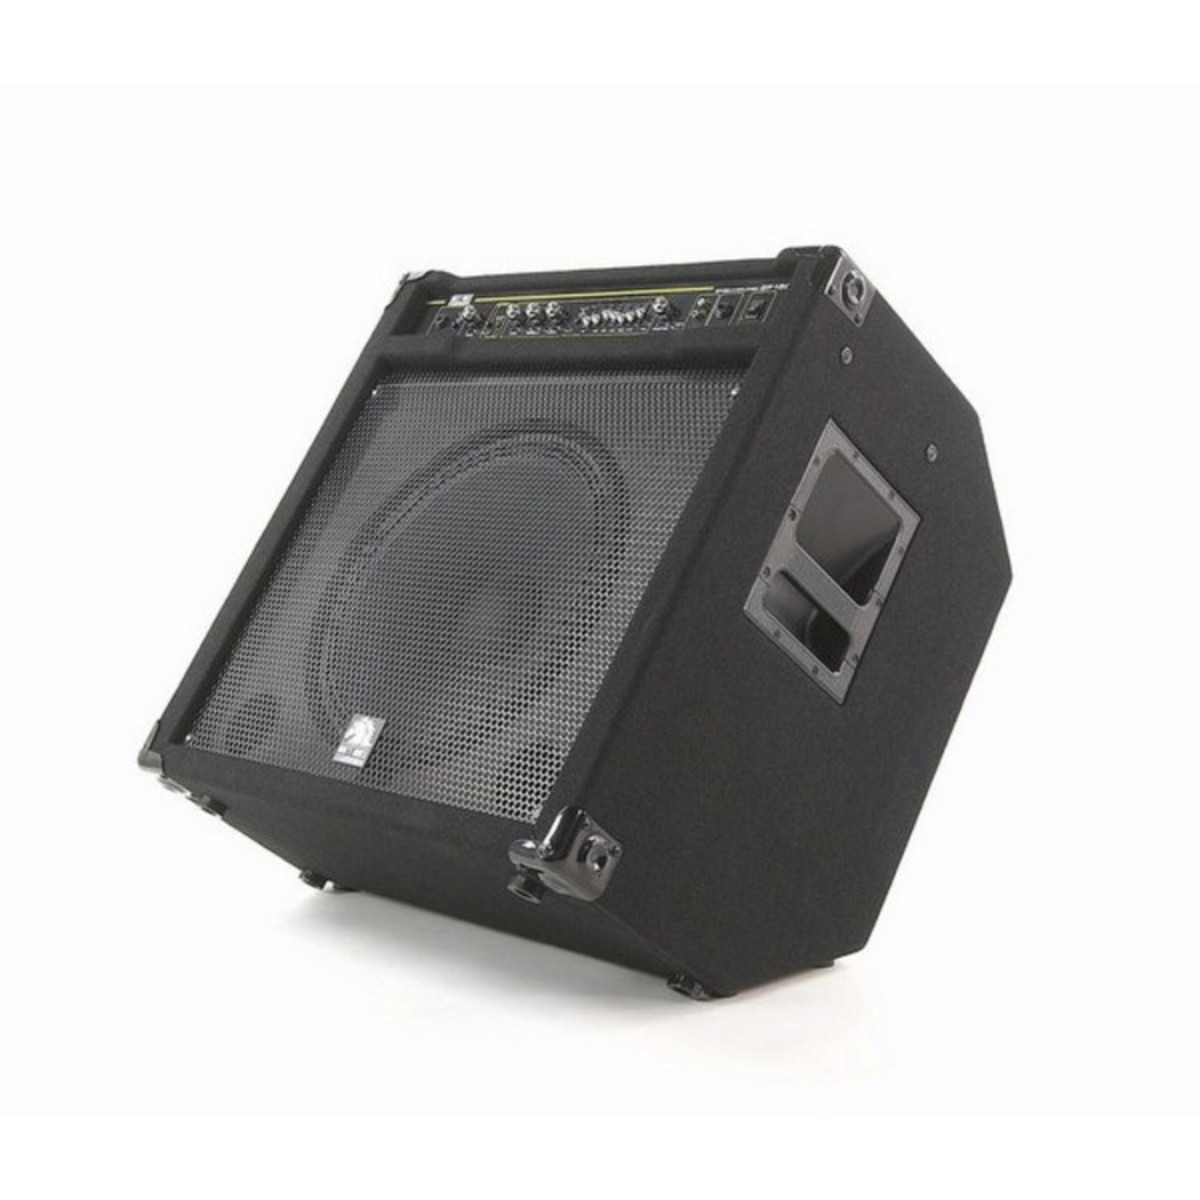 Disc White Horse Bp150 Bass Guitar Amplifier At Gear4music Apmilifier Mini Circuit And Explanation Amp Loading Zoom